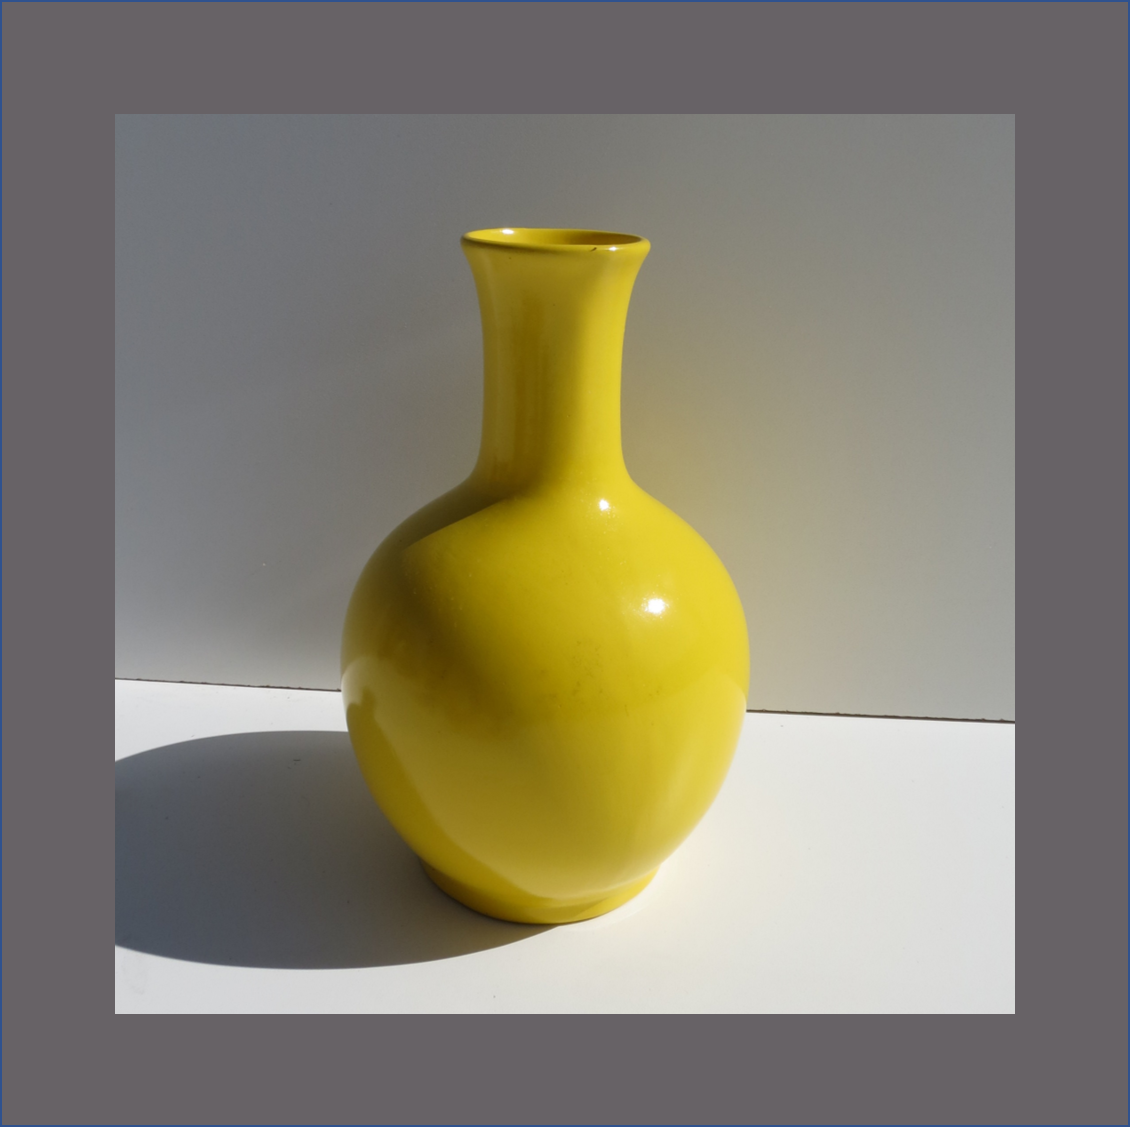 yellow-belly-vase-